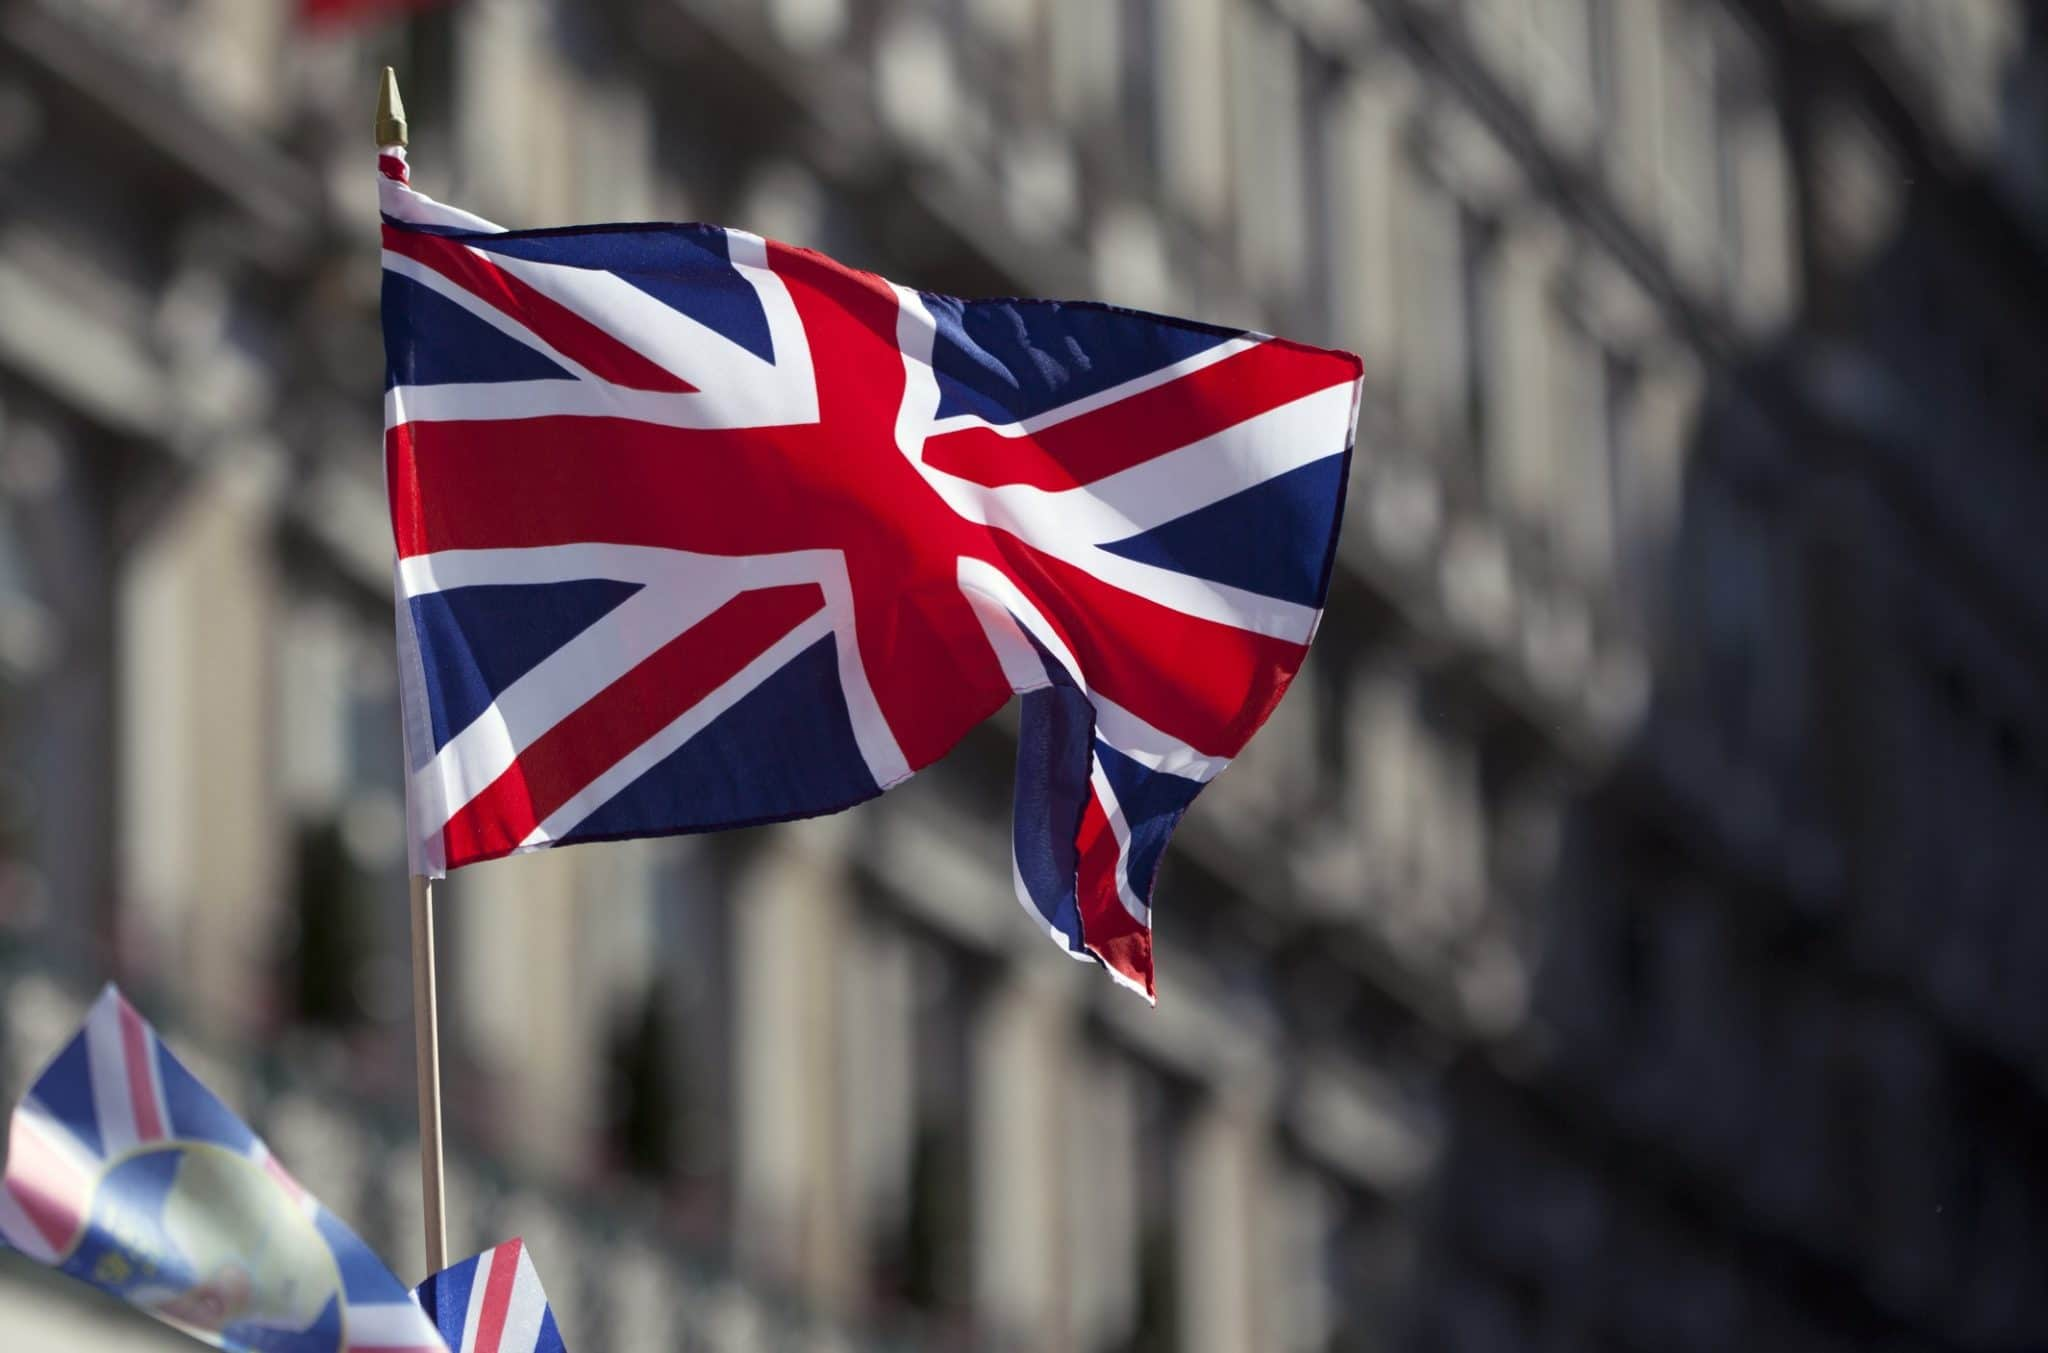 words that don't exist in English: British flag